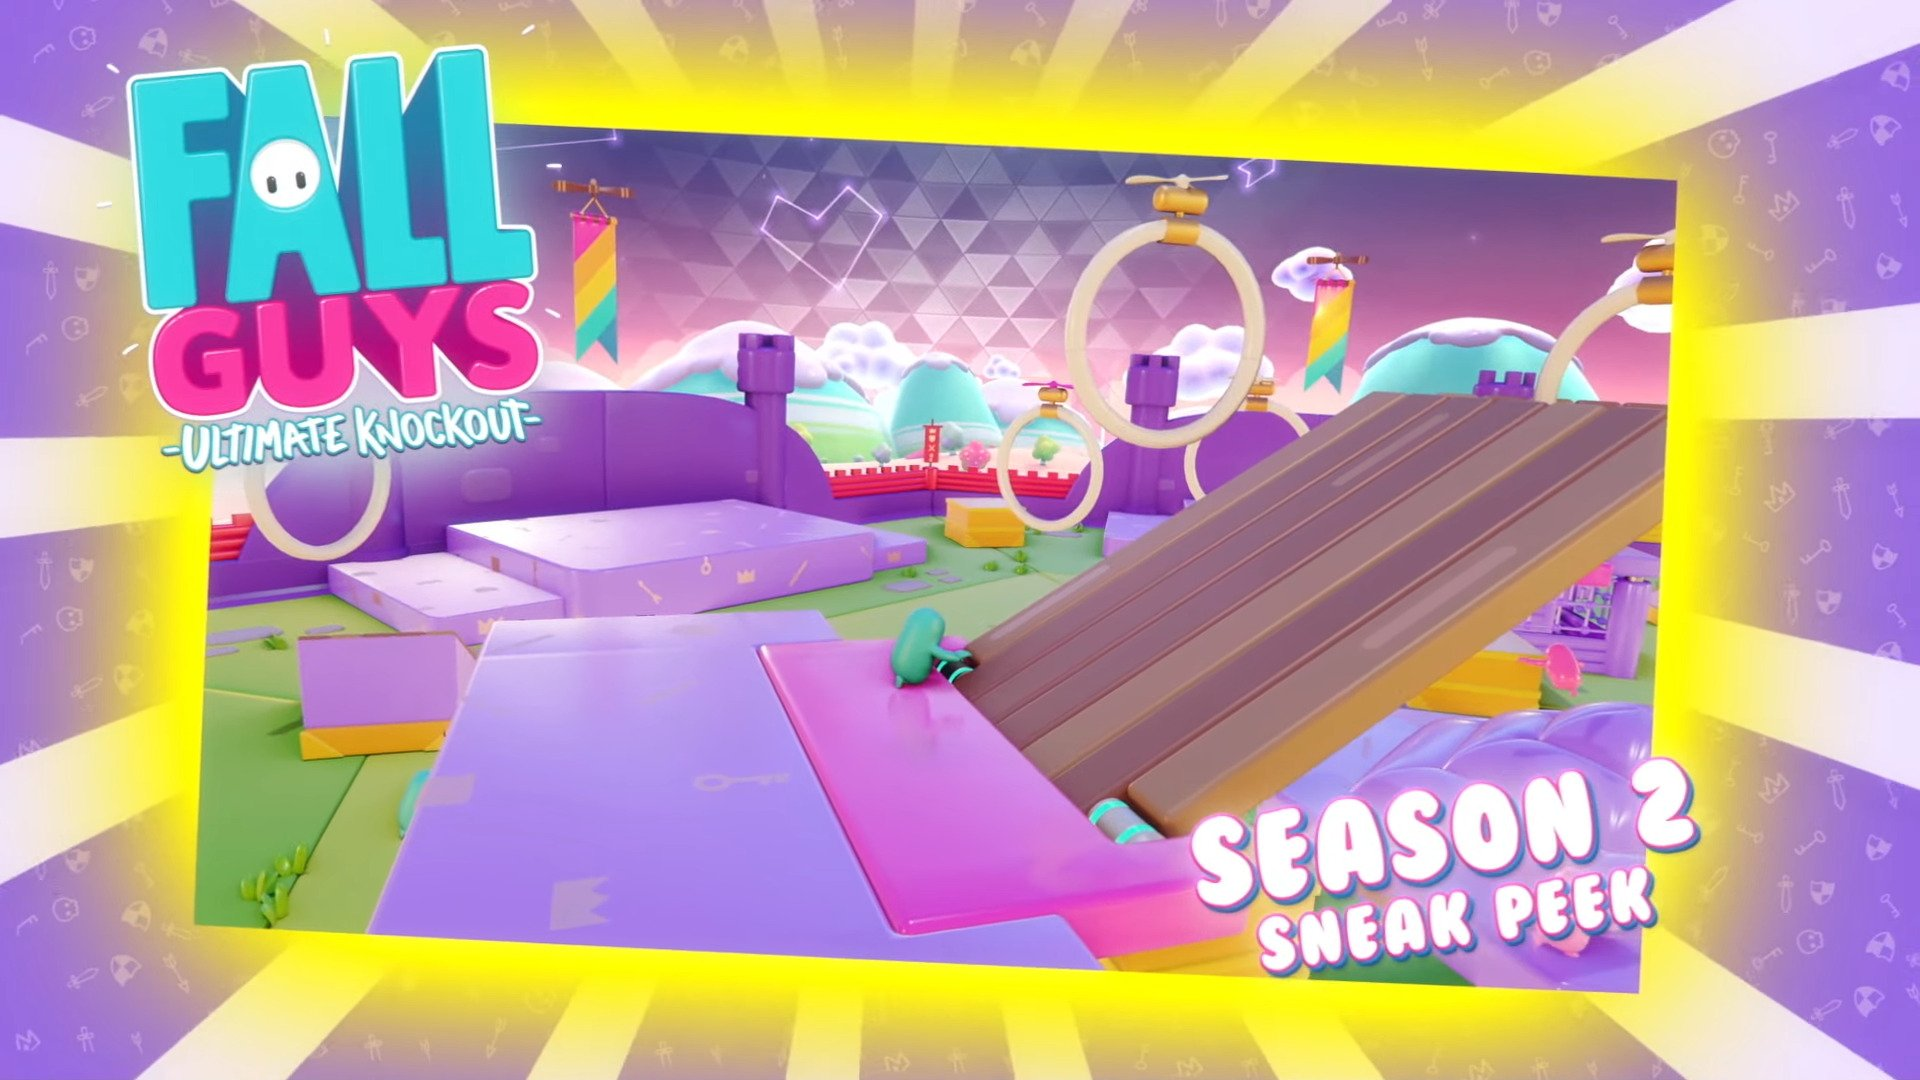 Fall Guys Has Gone On To Sell Around 10 Million Copies On The PC, According To Recent Sales Figure